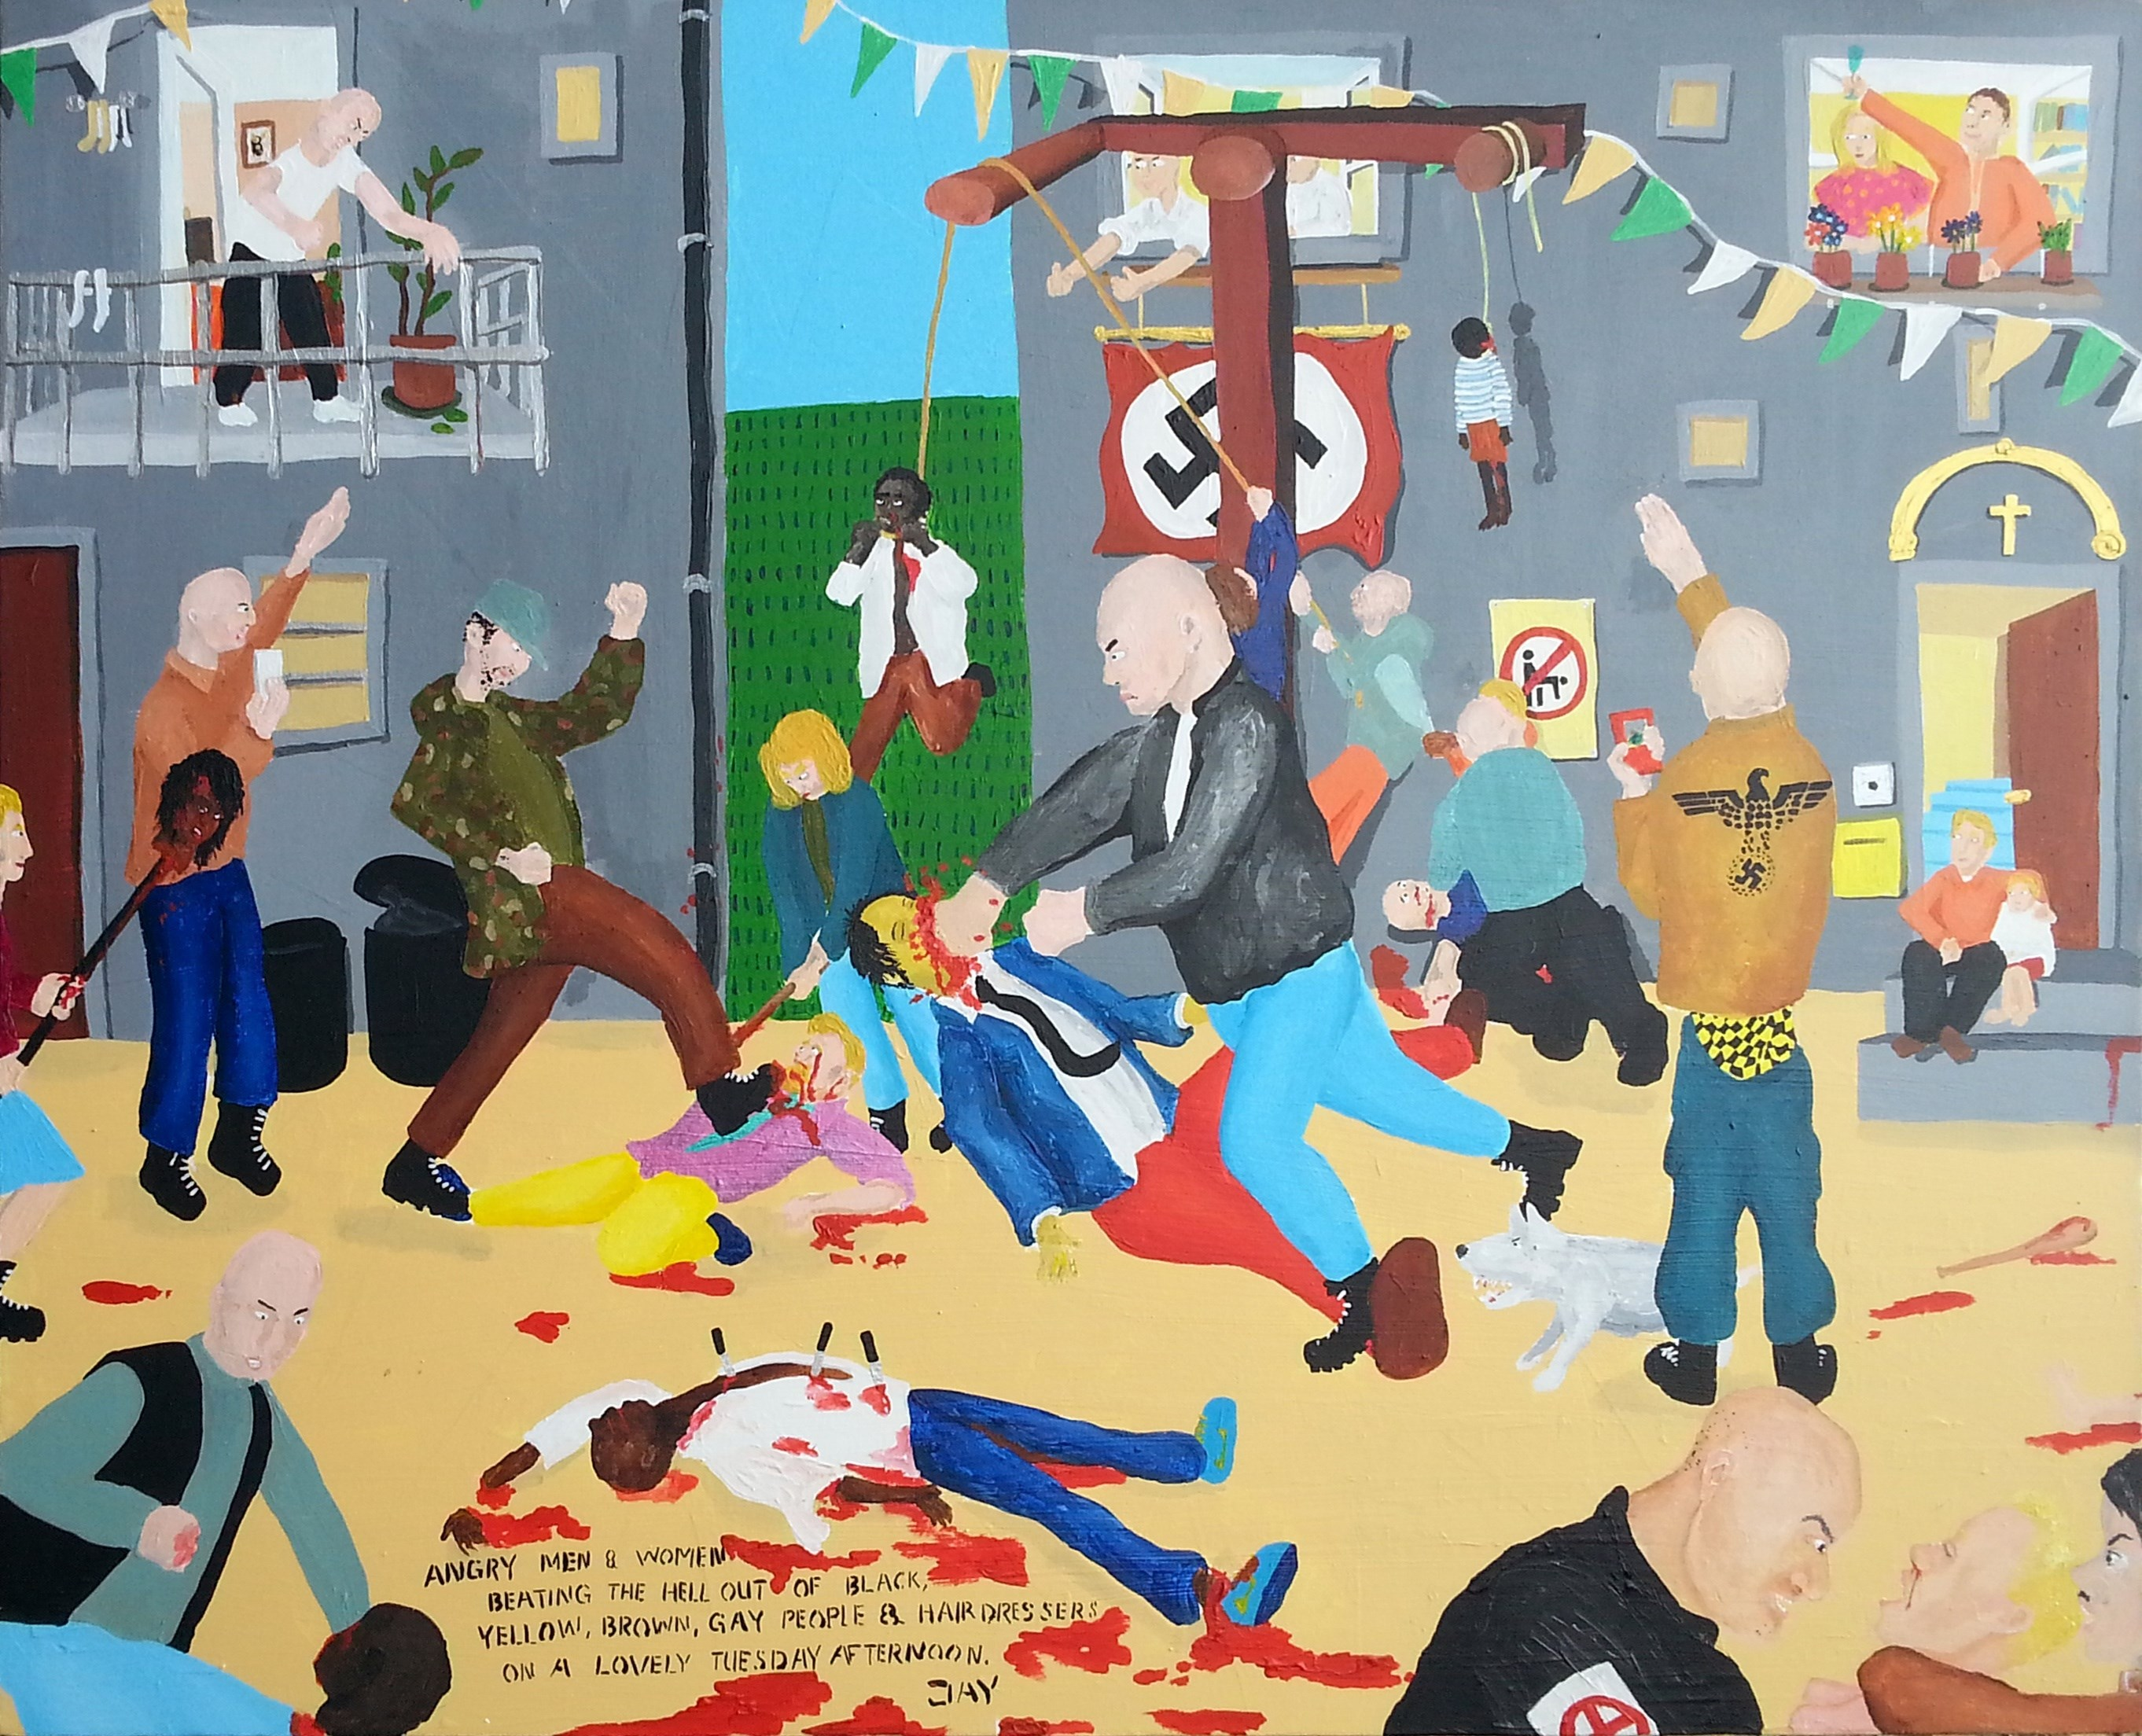 Bad painting number 01: Angry men & women beating the hell out of black, yellow, brown, gay people & hairdressers on a lovely Tuesday afternoon., original Avant-Garde Acrylic Painting by Jay Rechsteiner